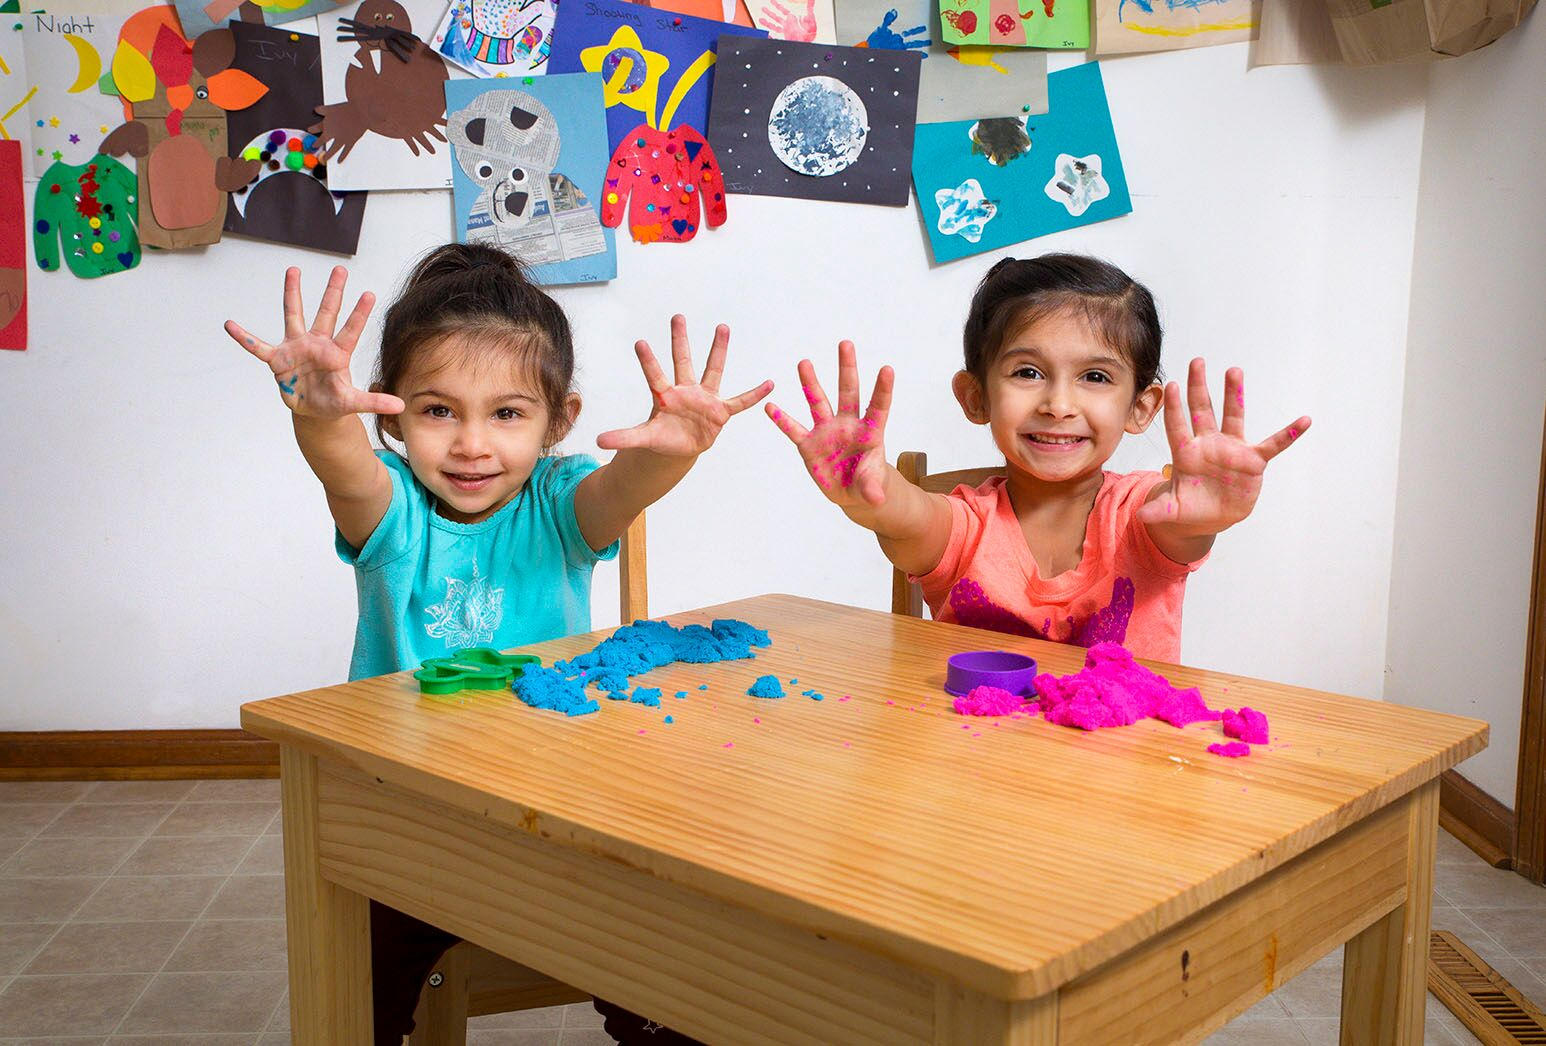 Two young girls with dark hair playing with colorful Play-Doh.